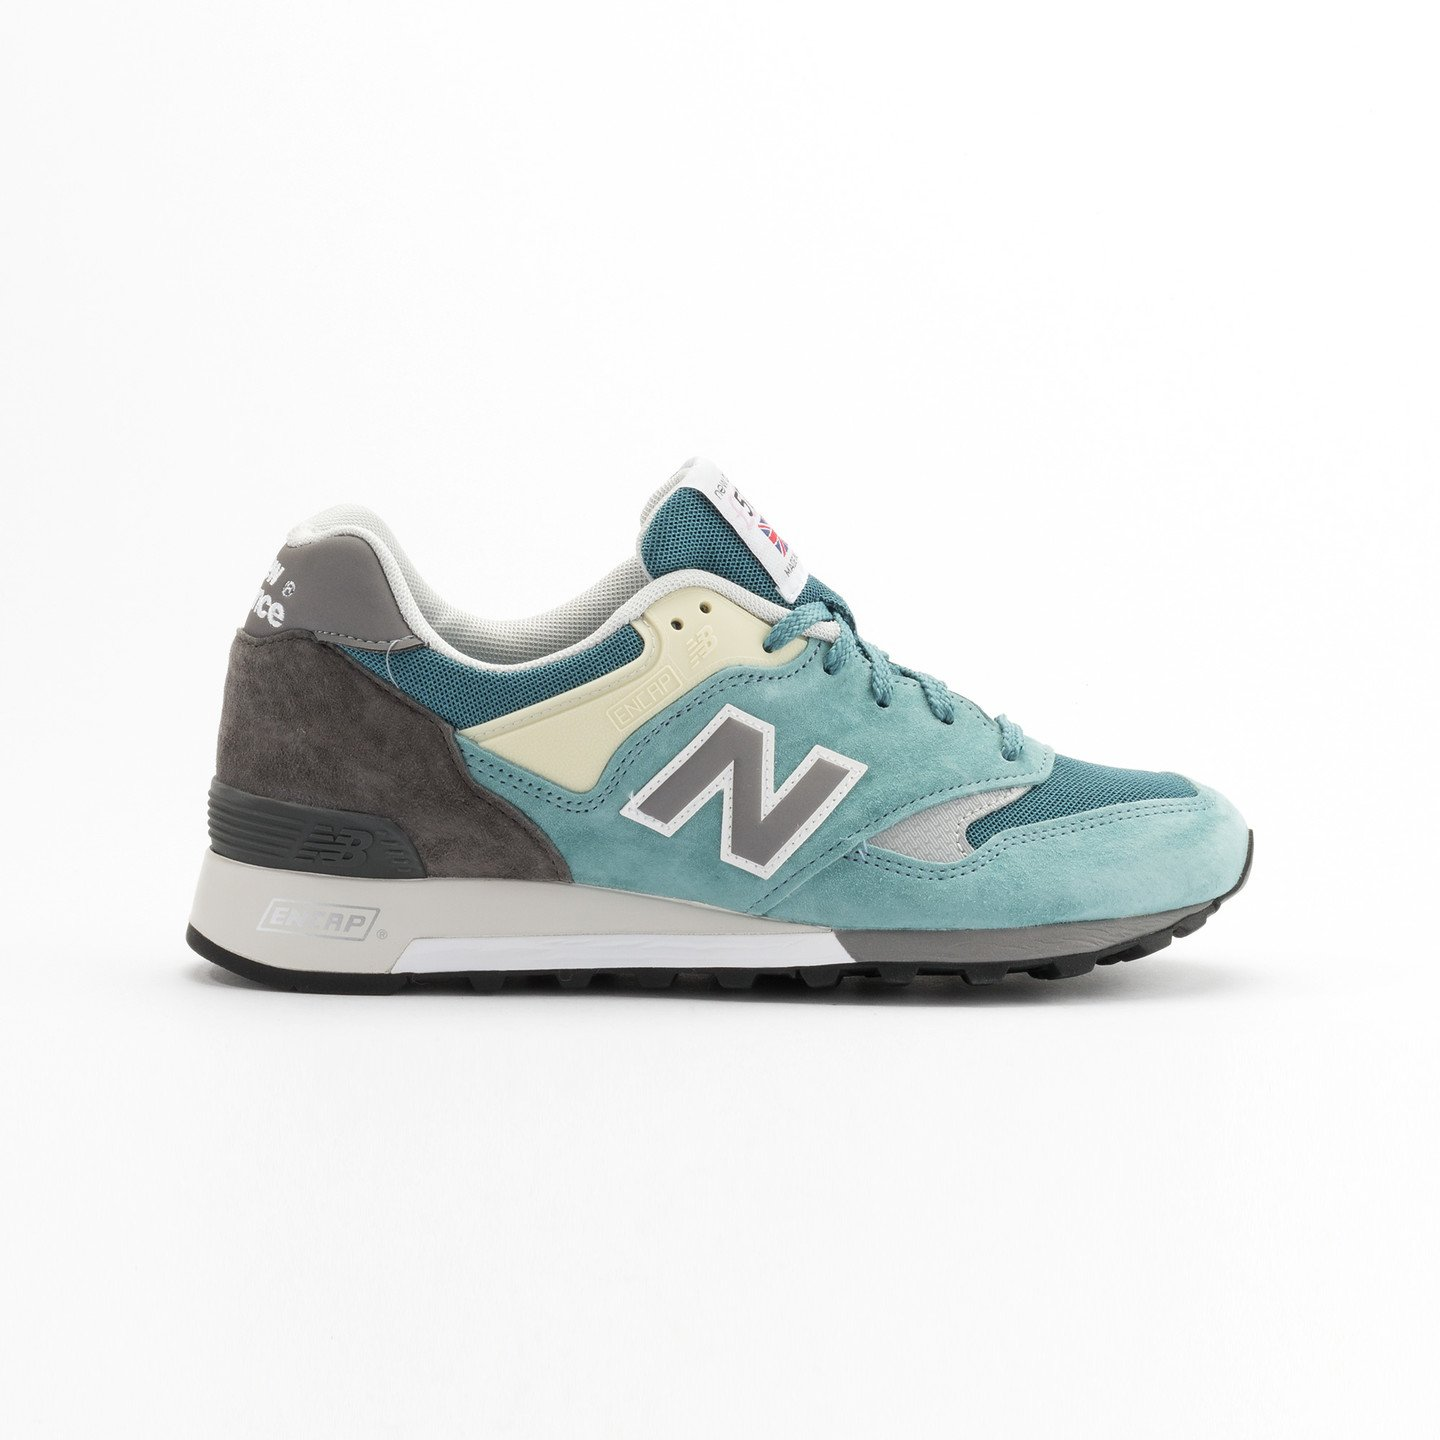 New Balance M577 ETB - Made in England Sea Glass / Grey/ Yellow M577ETB-42